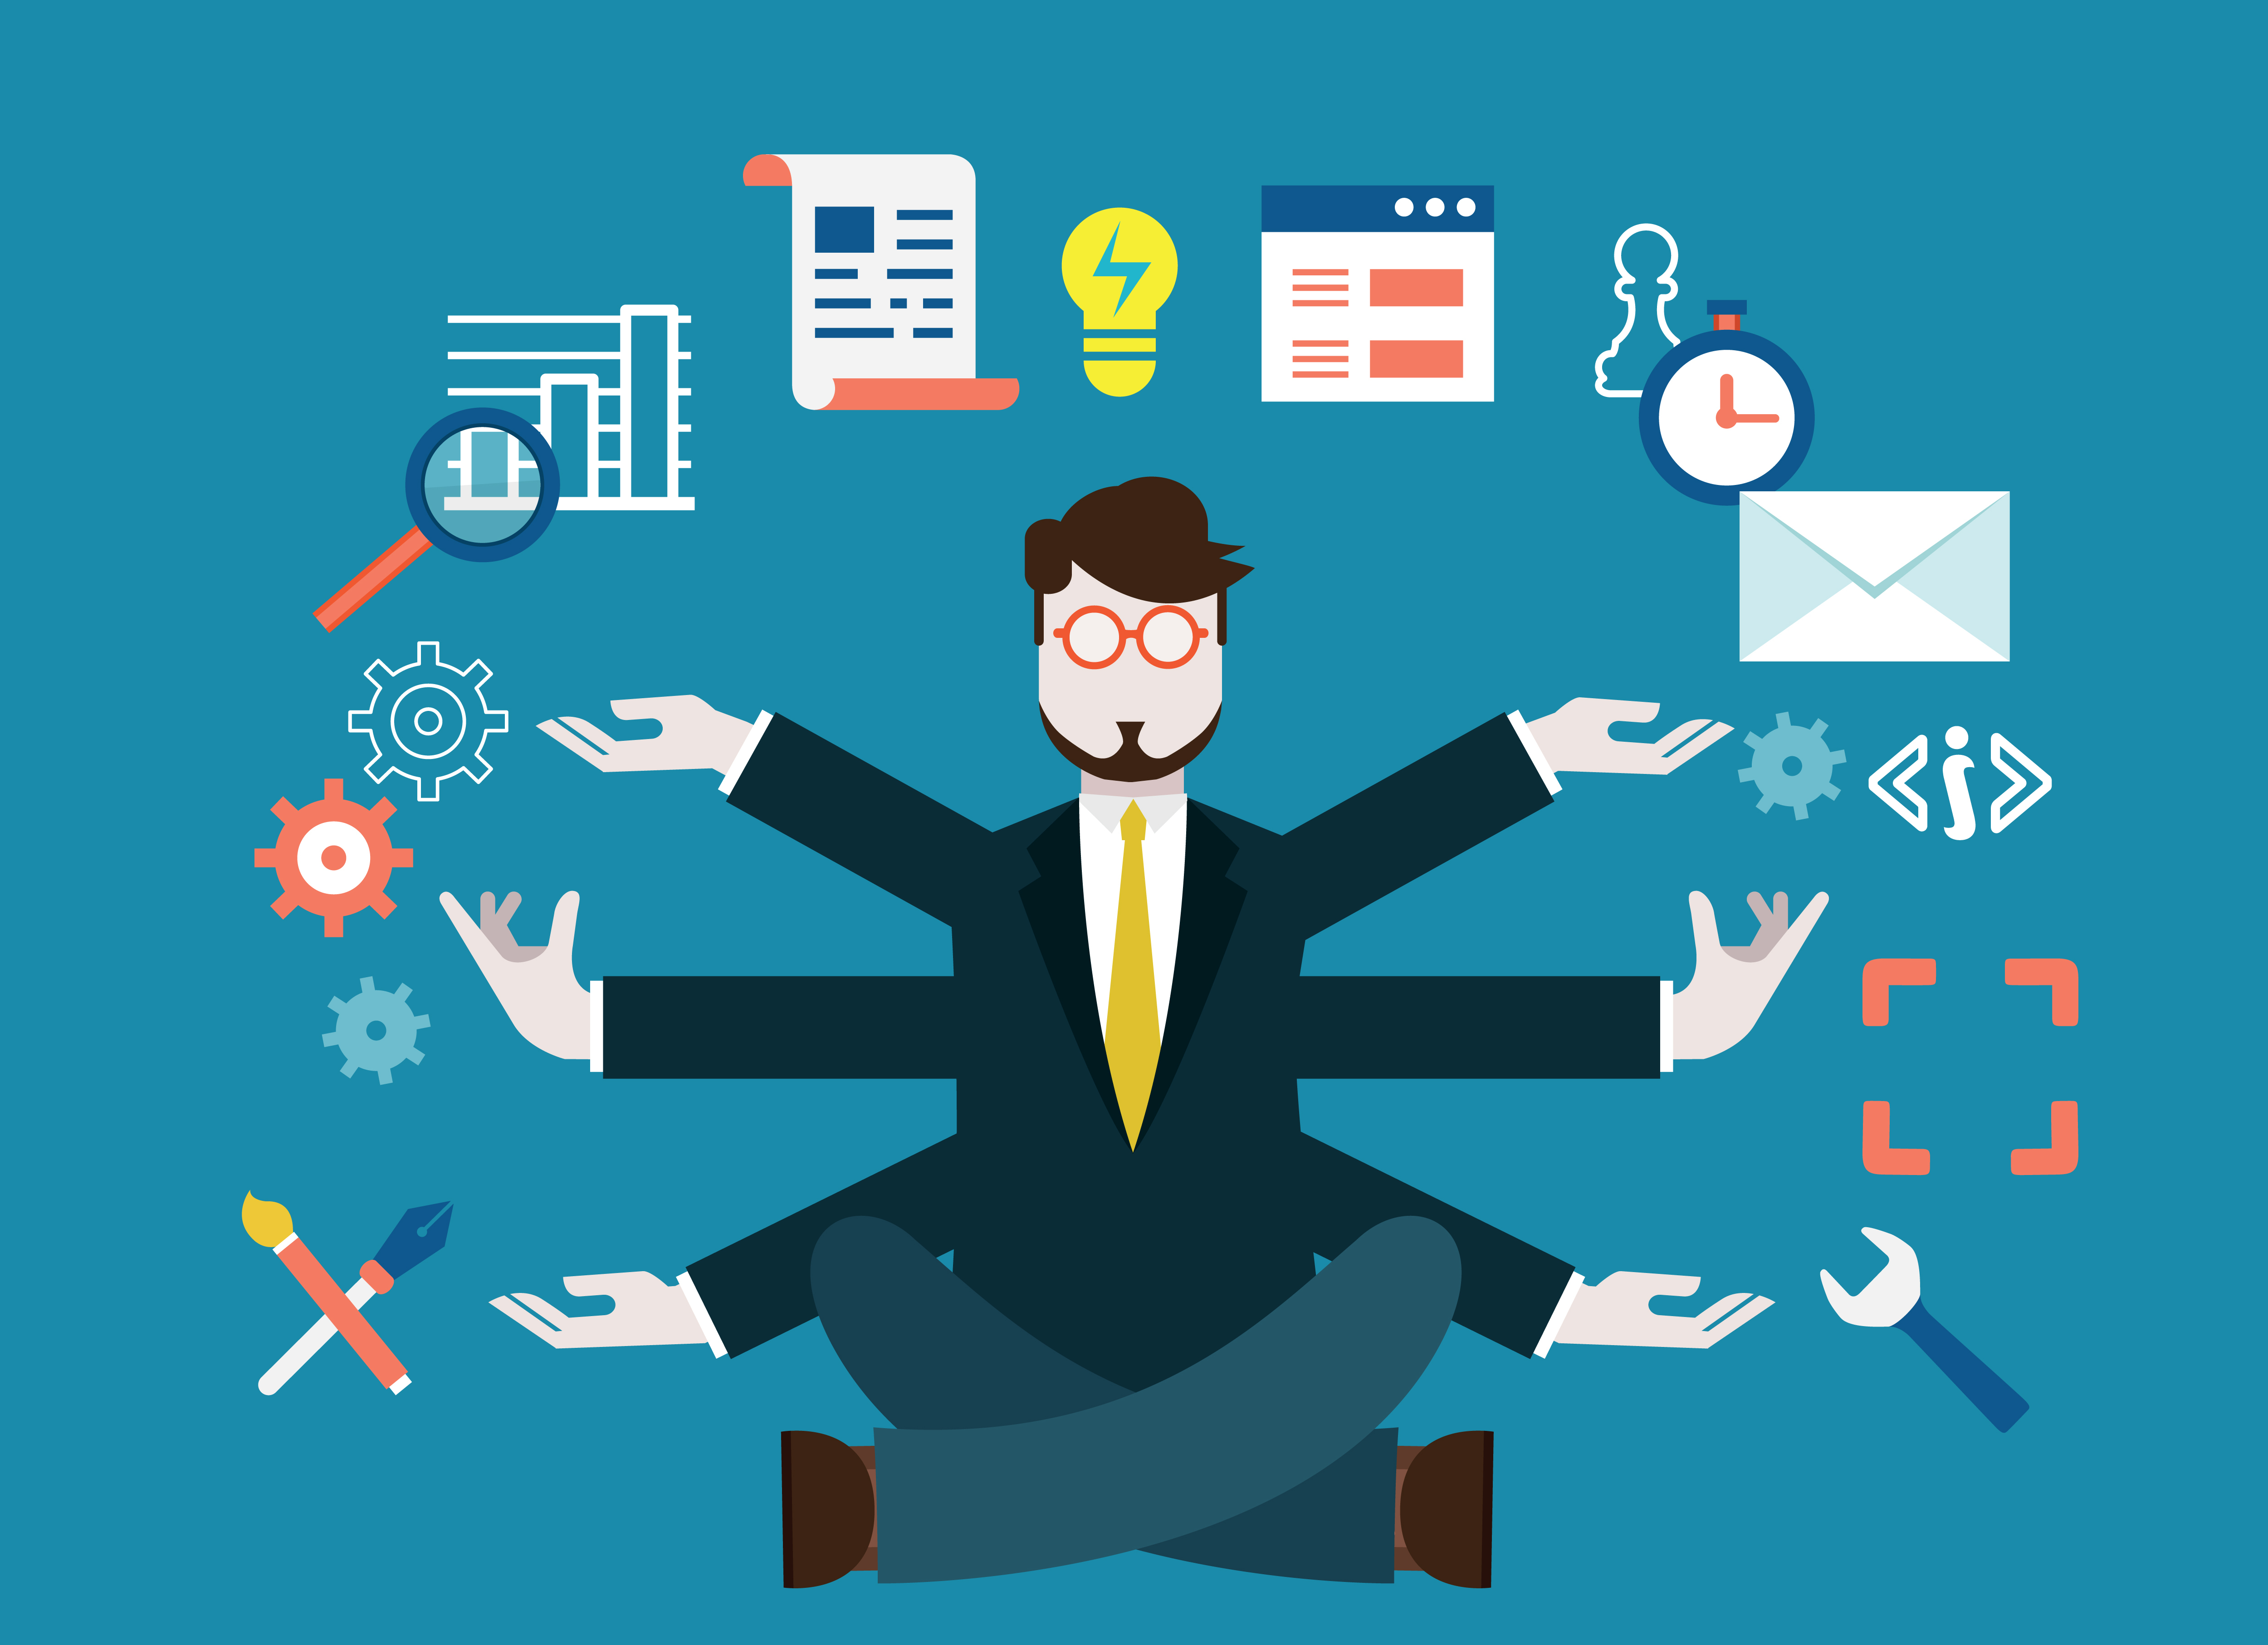 Mindful working: Stop talking and start doing!